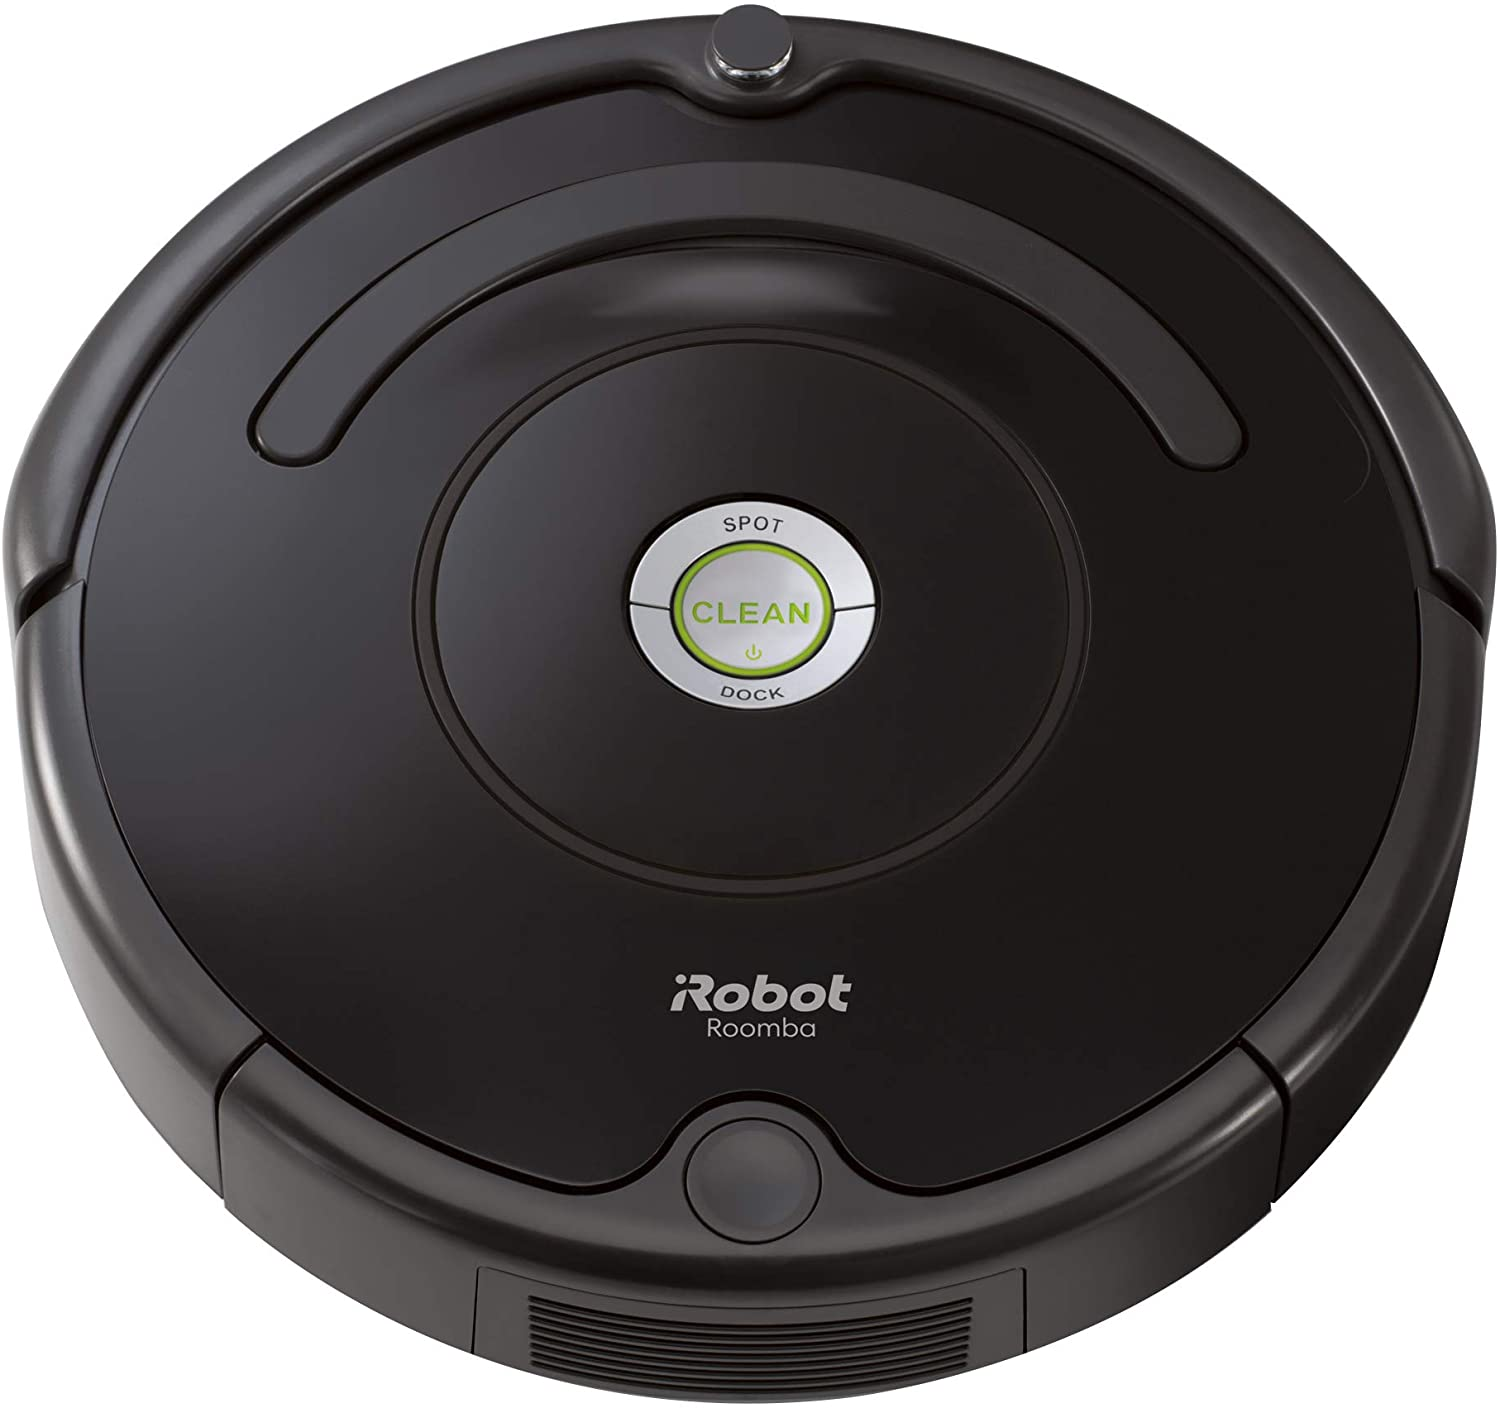 Best Robotic Vacuum for Pet Hair in 2020: Reviews & Buying Guide 3